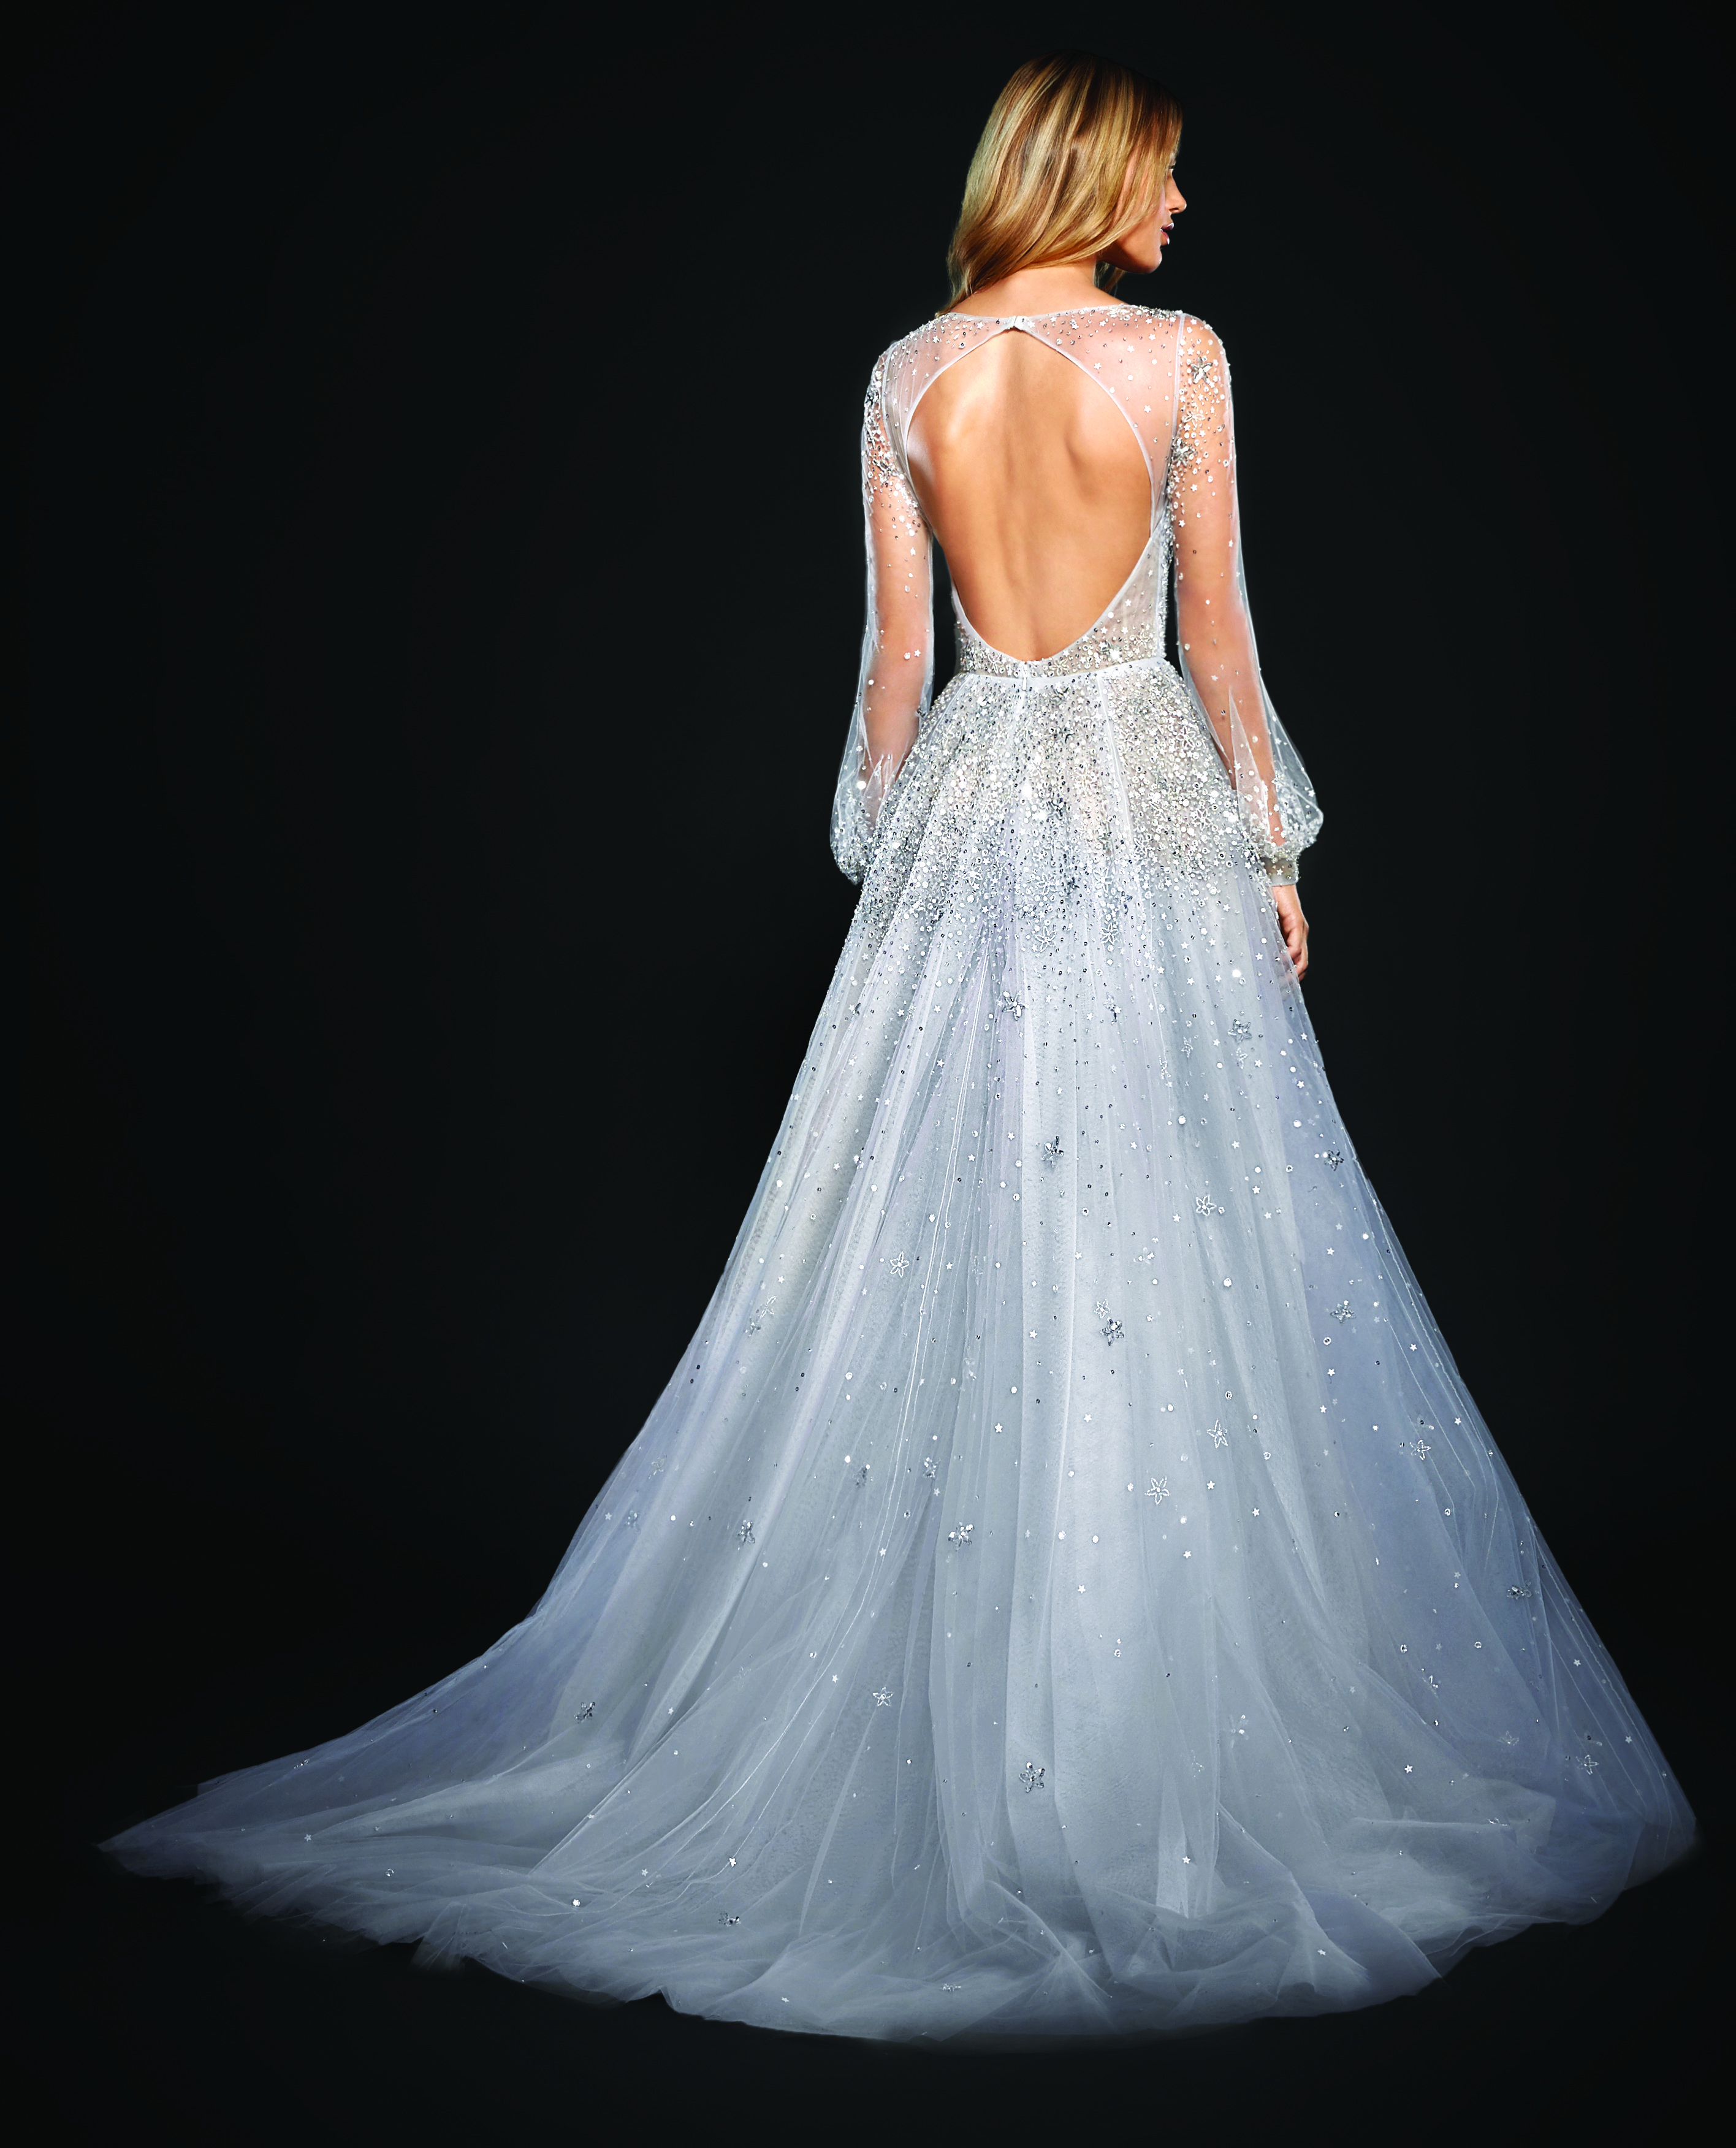 Bridal Gowns and Wedding Dresses by JLM Couture - Style 6700 Lumi